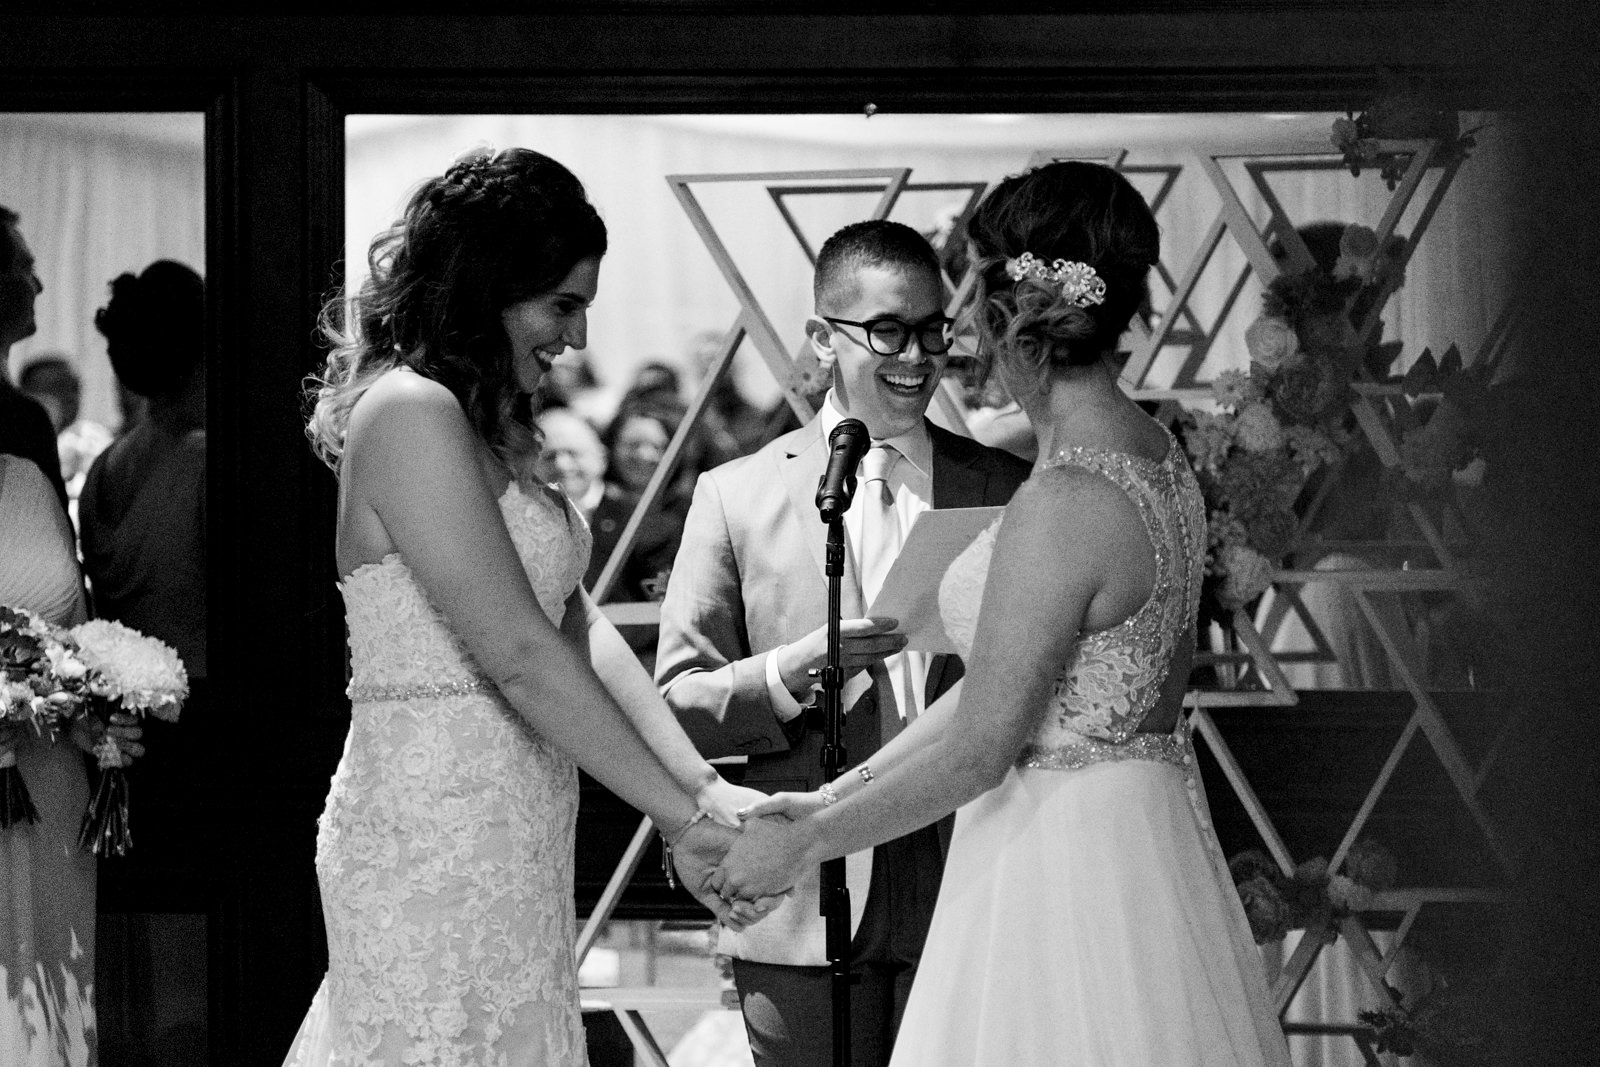 Lesbian couple, Chris and LeeAnn stand at the alter for their wedding ceremony at The Premier